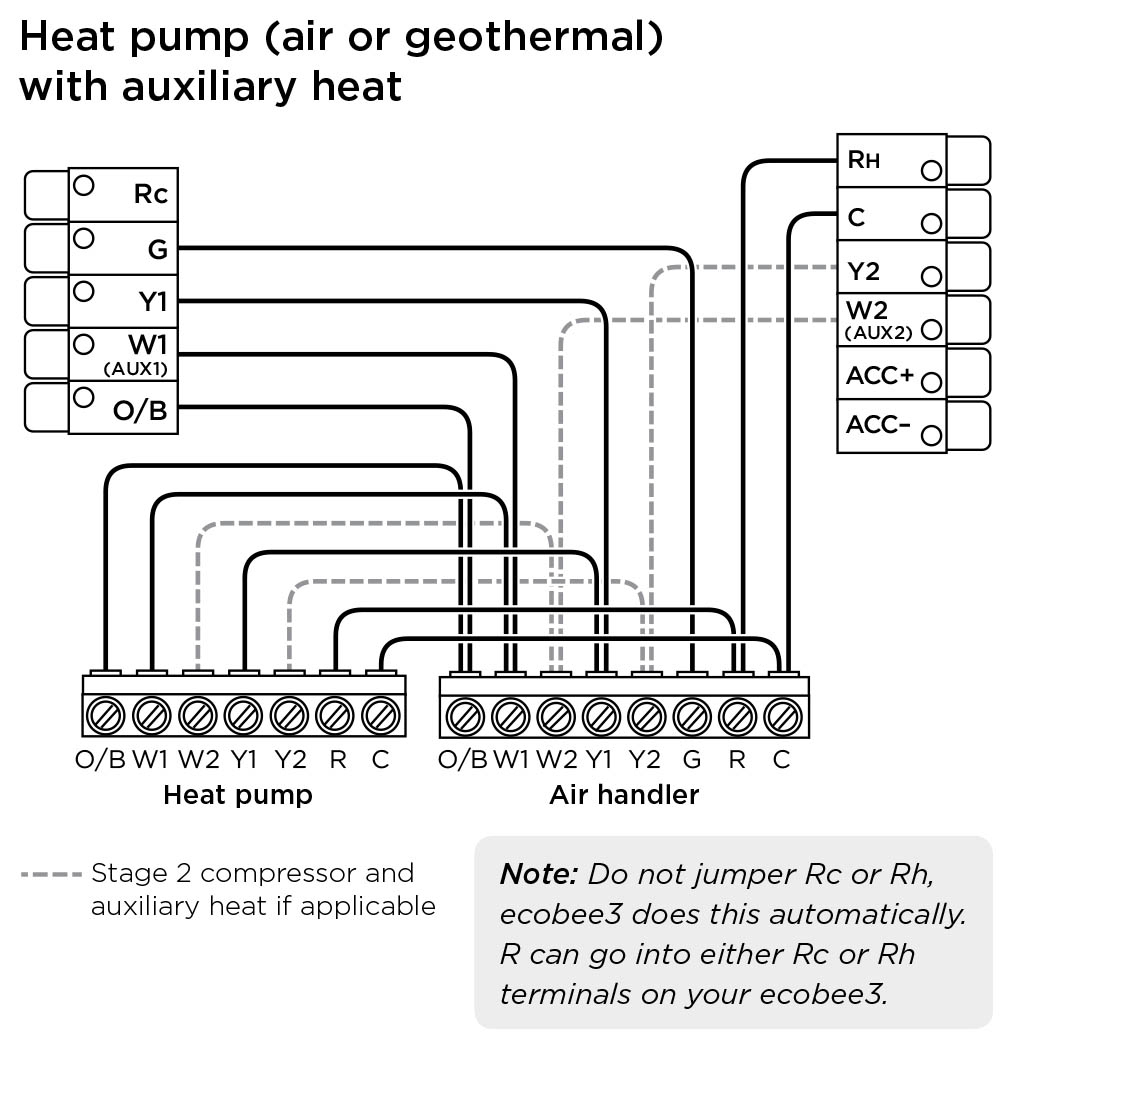 Ecobee3 Wiring Diagrams – Ecobee Support - Heatpump Wiring Diagram